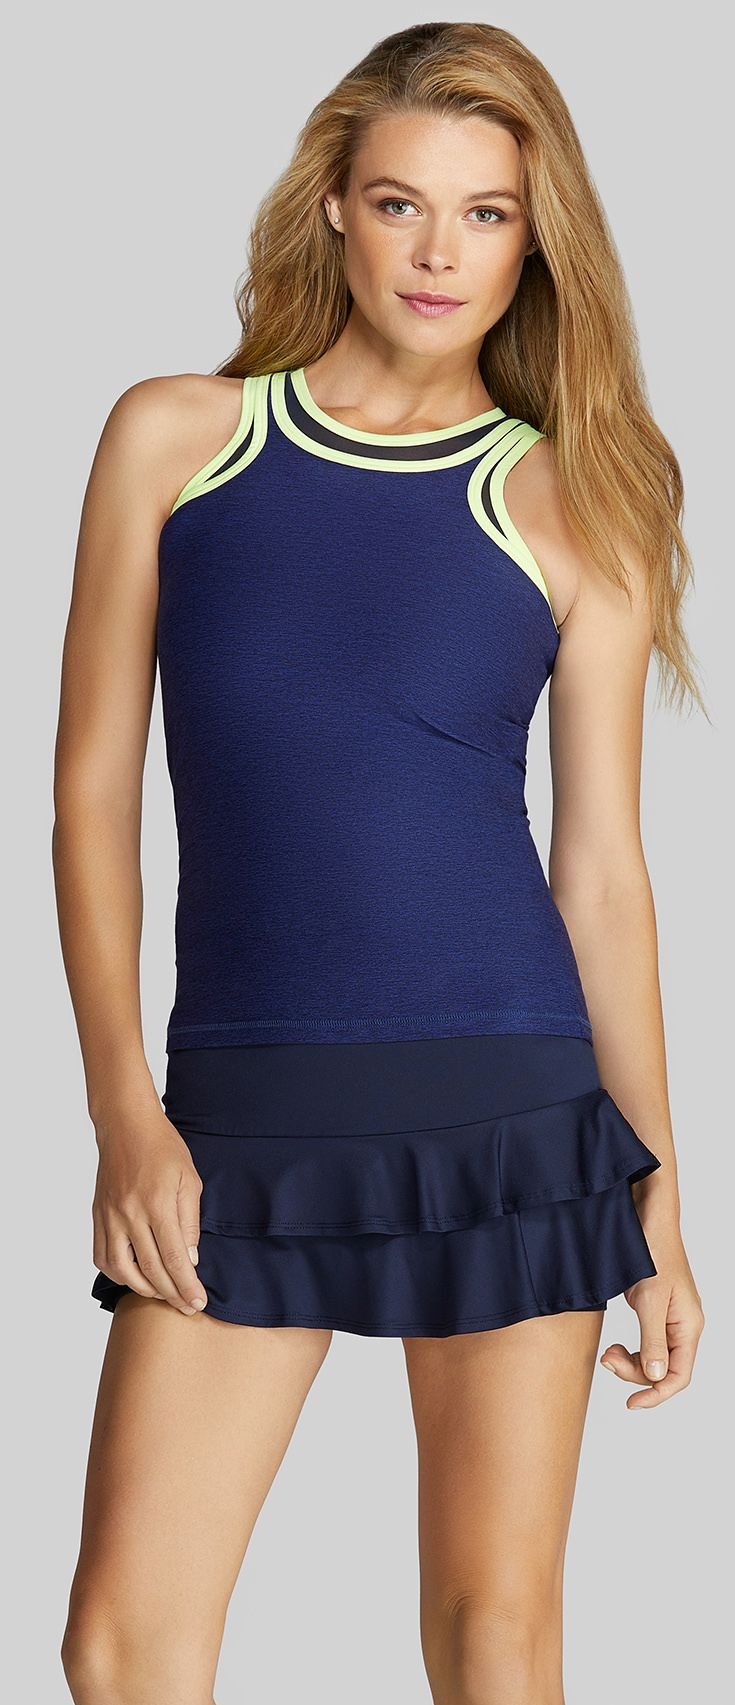 Check Out The Newest Women S Tennis Apparel Line From Tail The Tail Bright Lights Collection Includes Perform Tennis Clothes Tennis Outfit Women Tennis Skirts